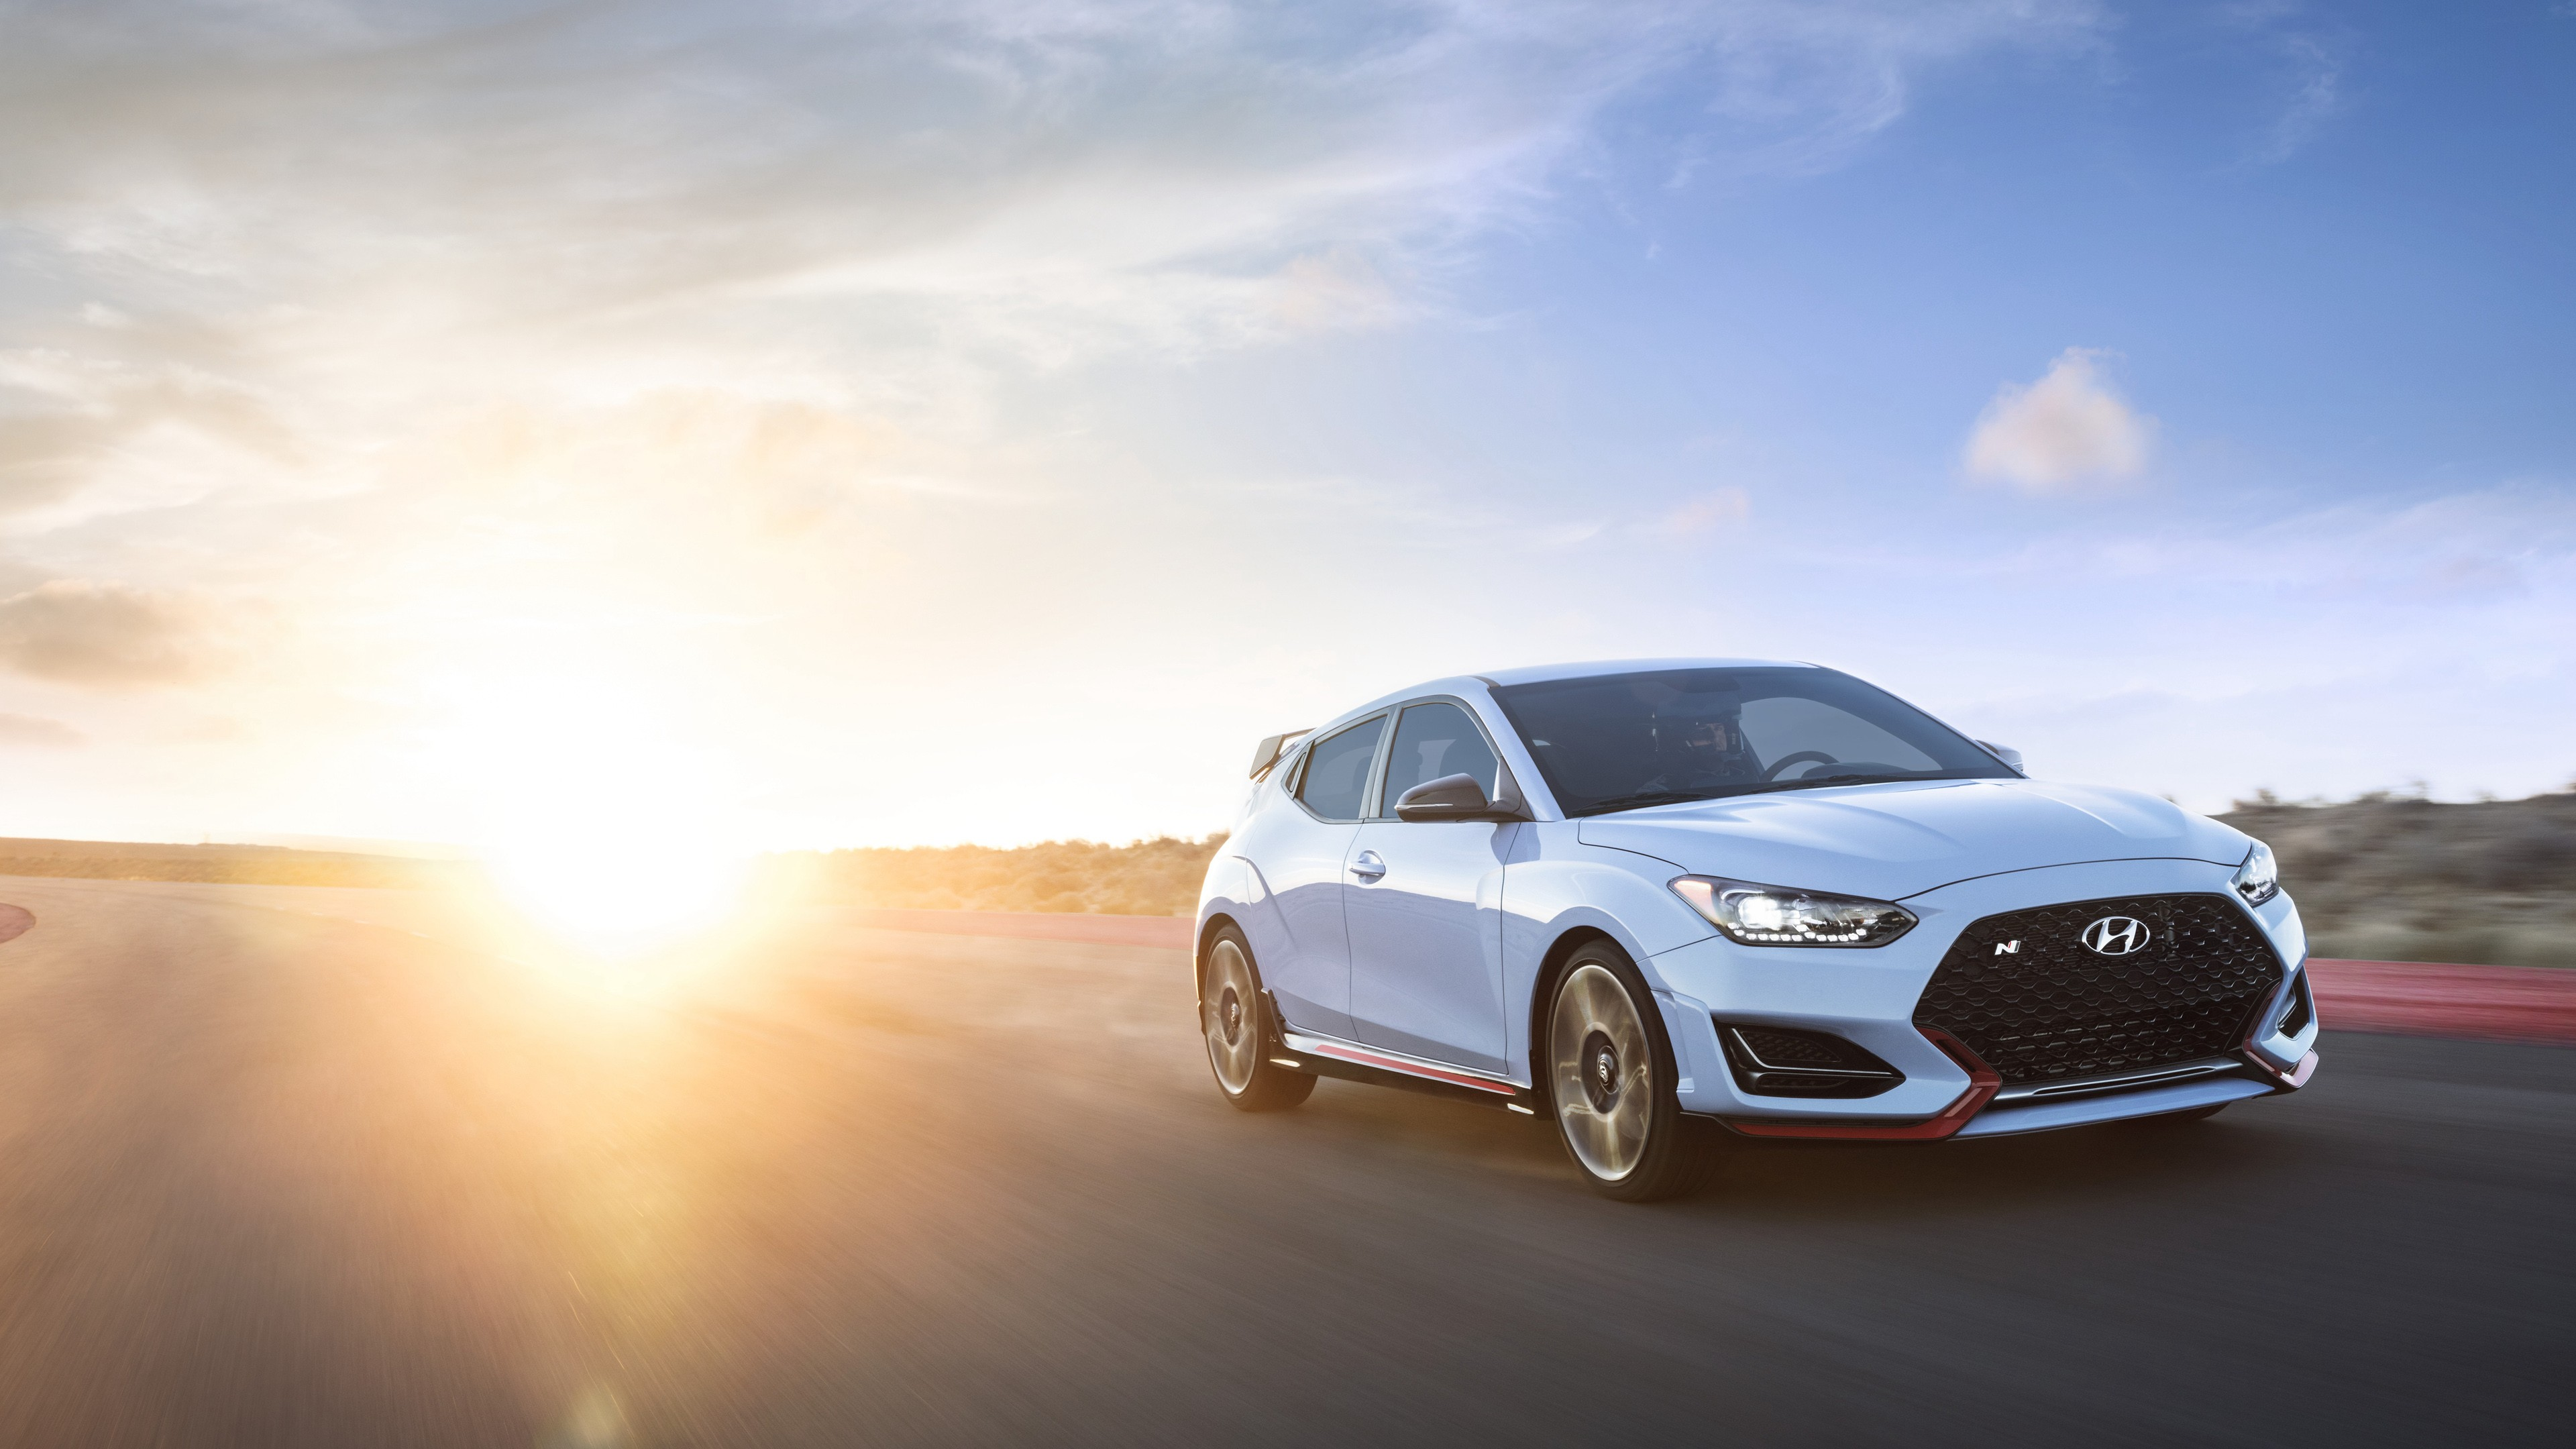 2017 Hyundai Santa Fe >> 2019 Hyundai Veloster N 2 4K Wallpaper | HD Car Wallpapers ...